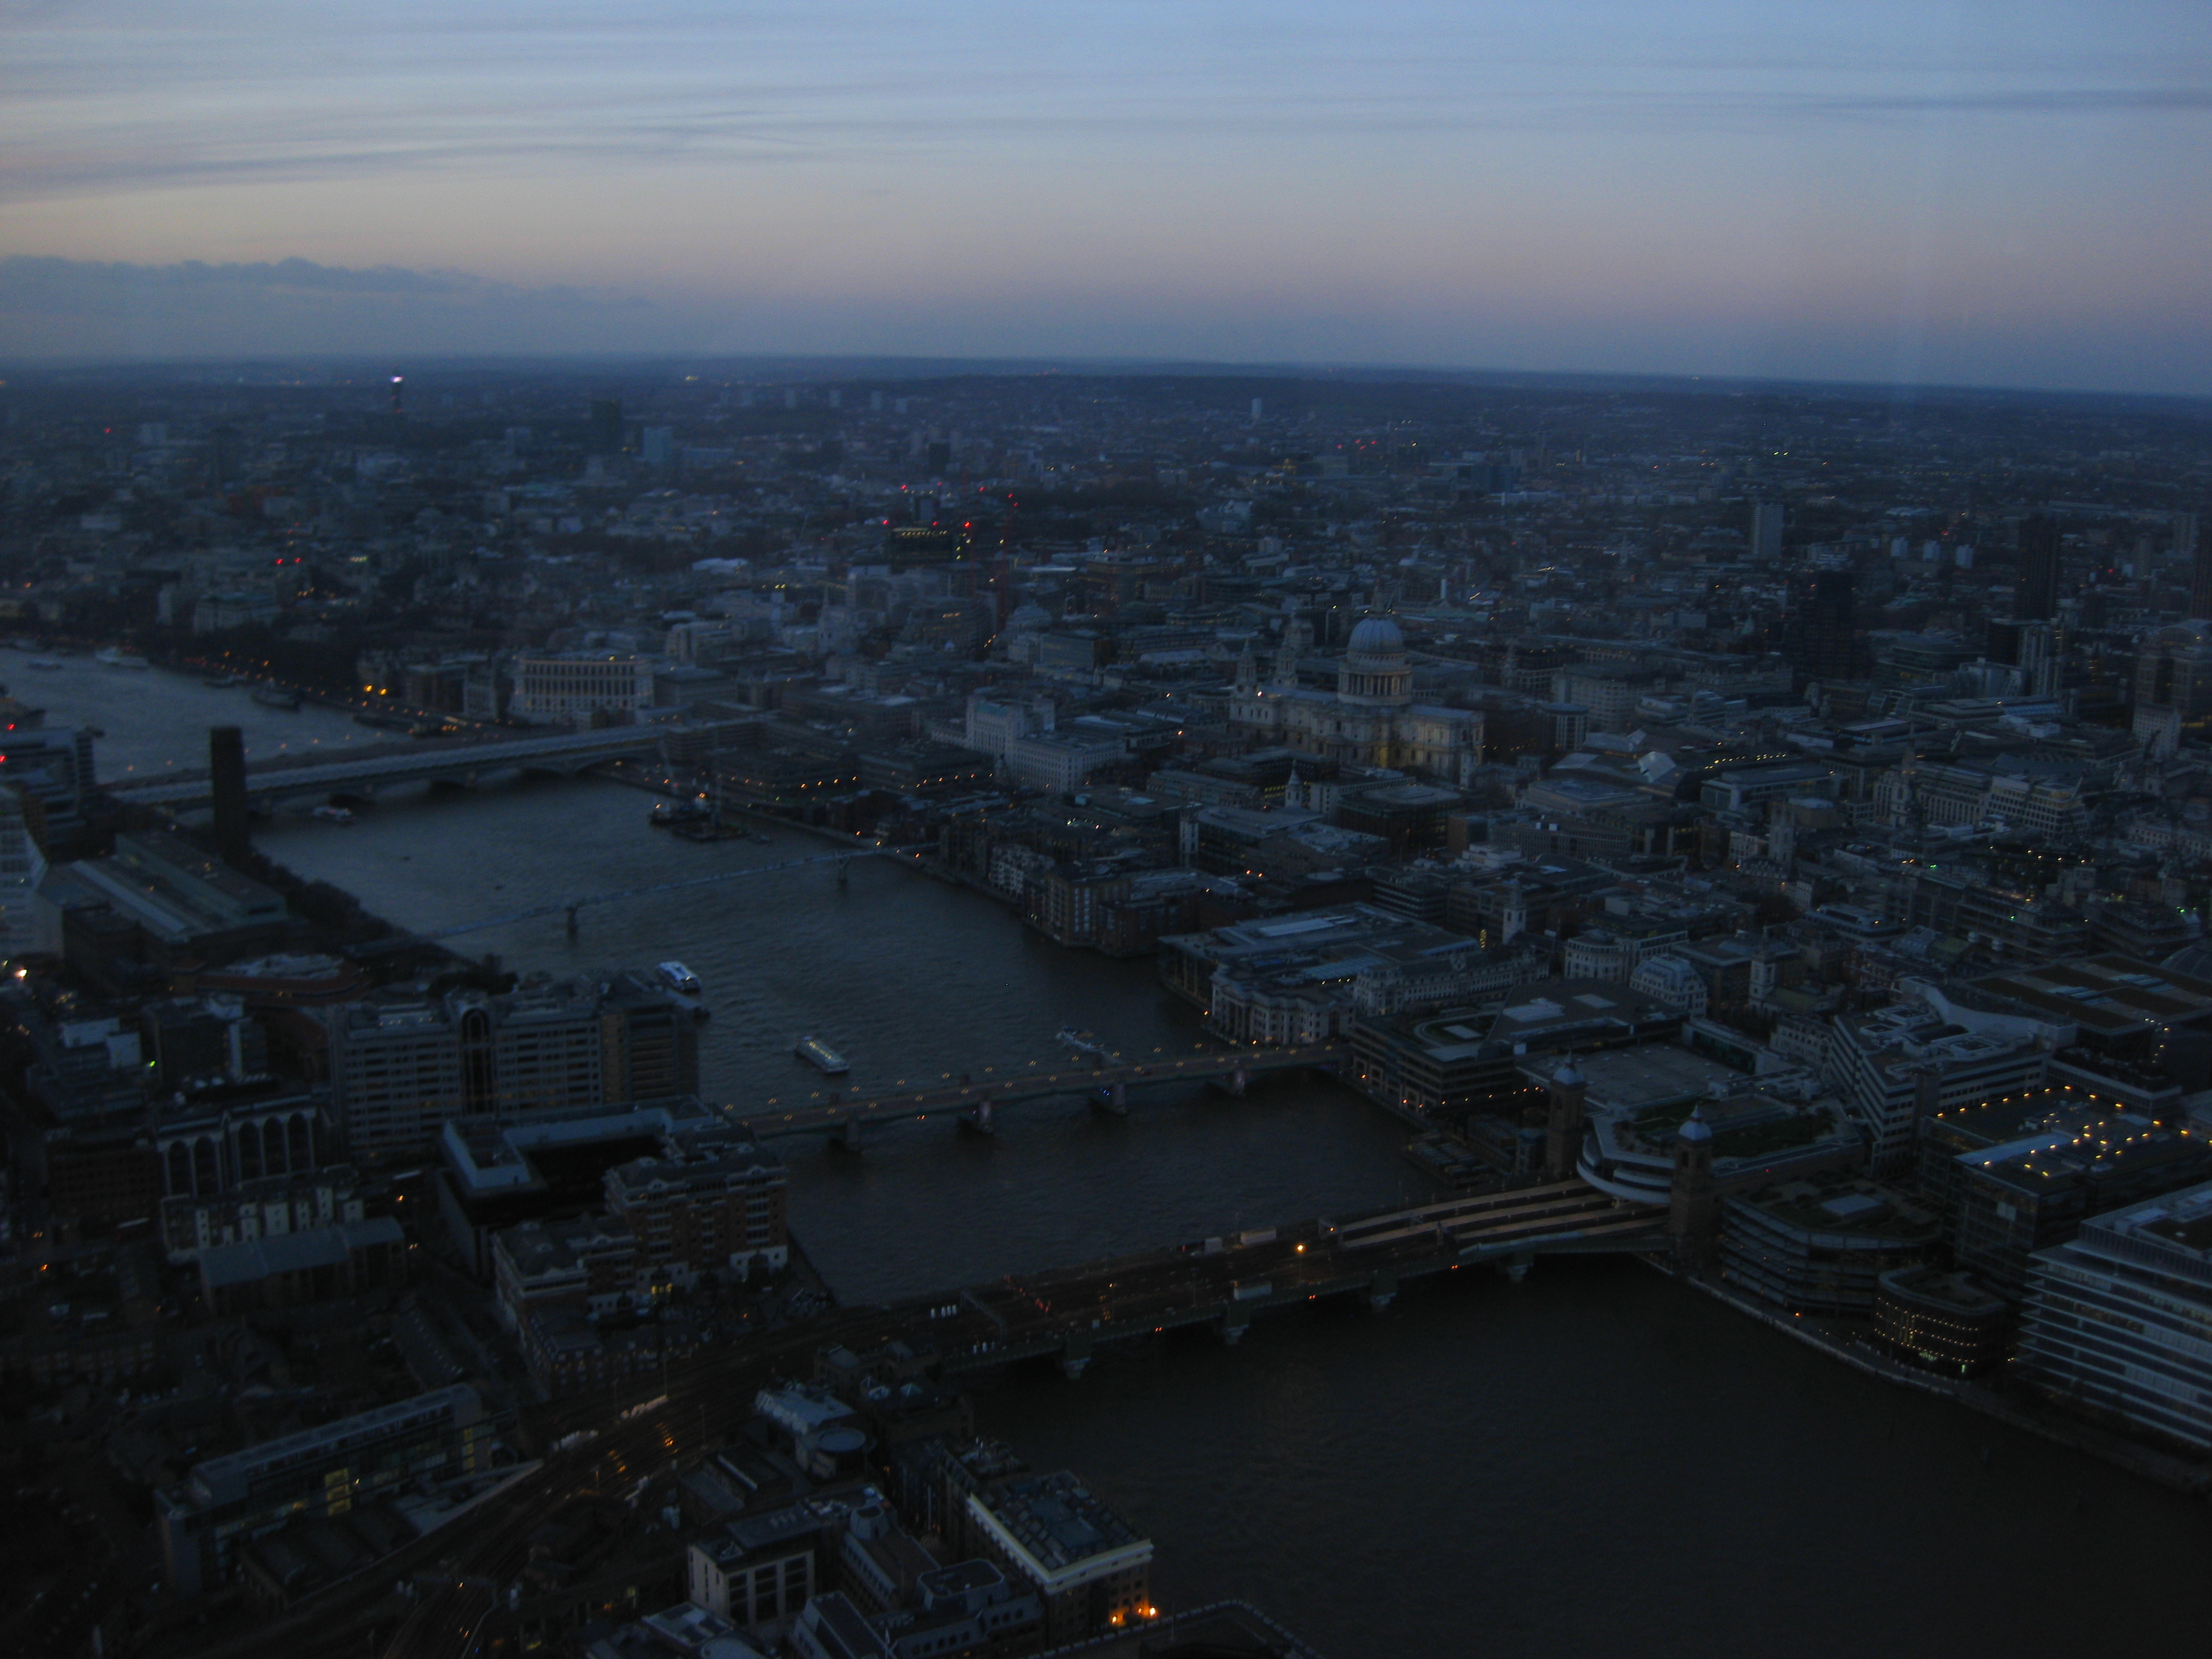 Central London at sunset